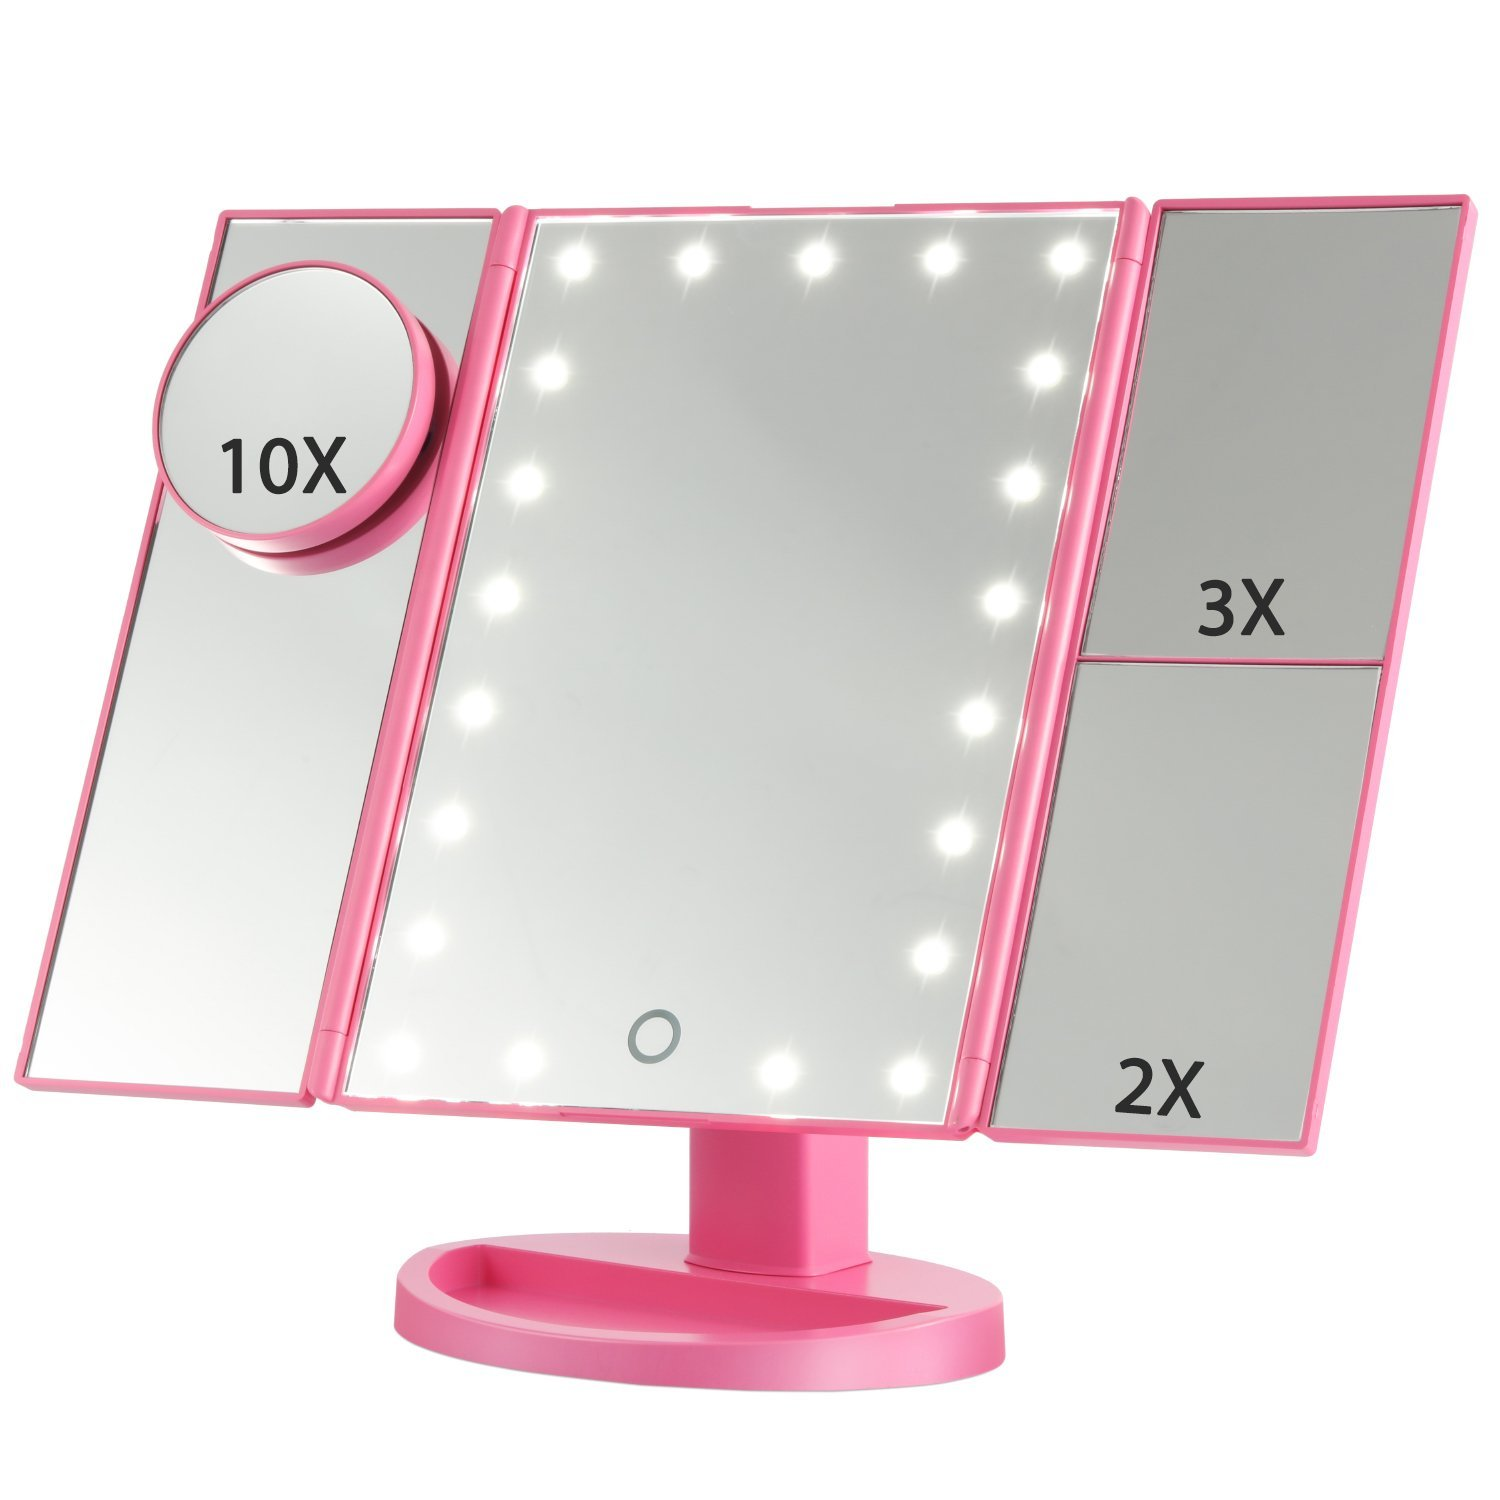 Makeup Mirrors-Touch Screen LED Lighted Makeup Mirror with 10x Magnifying Mirrors